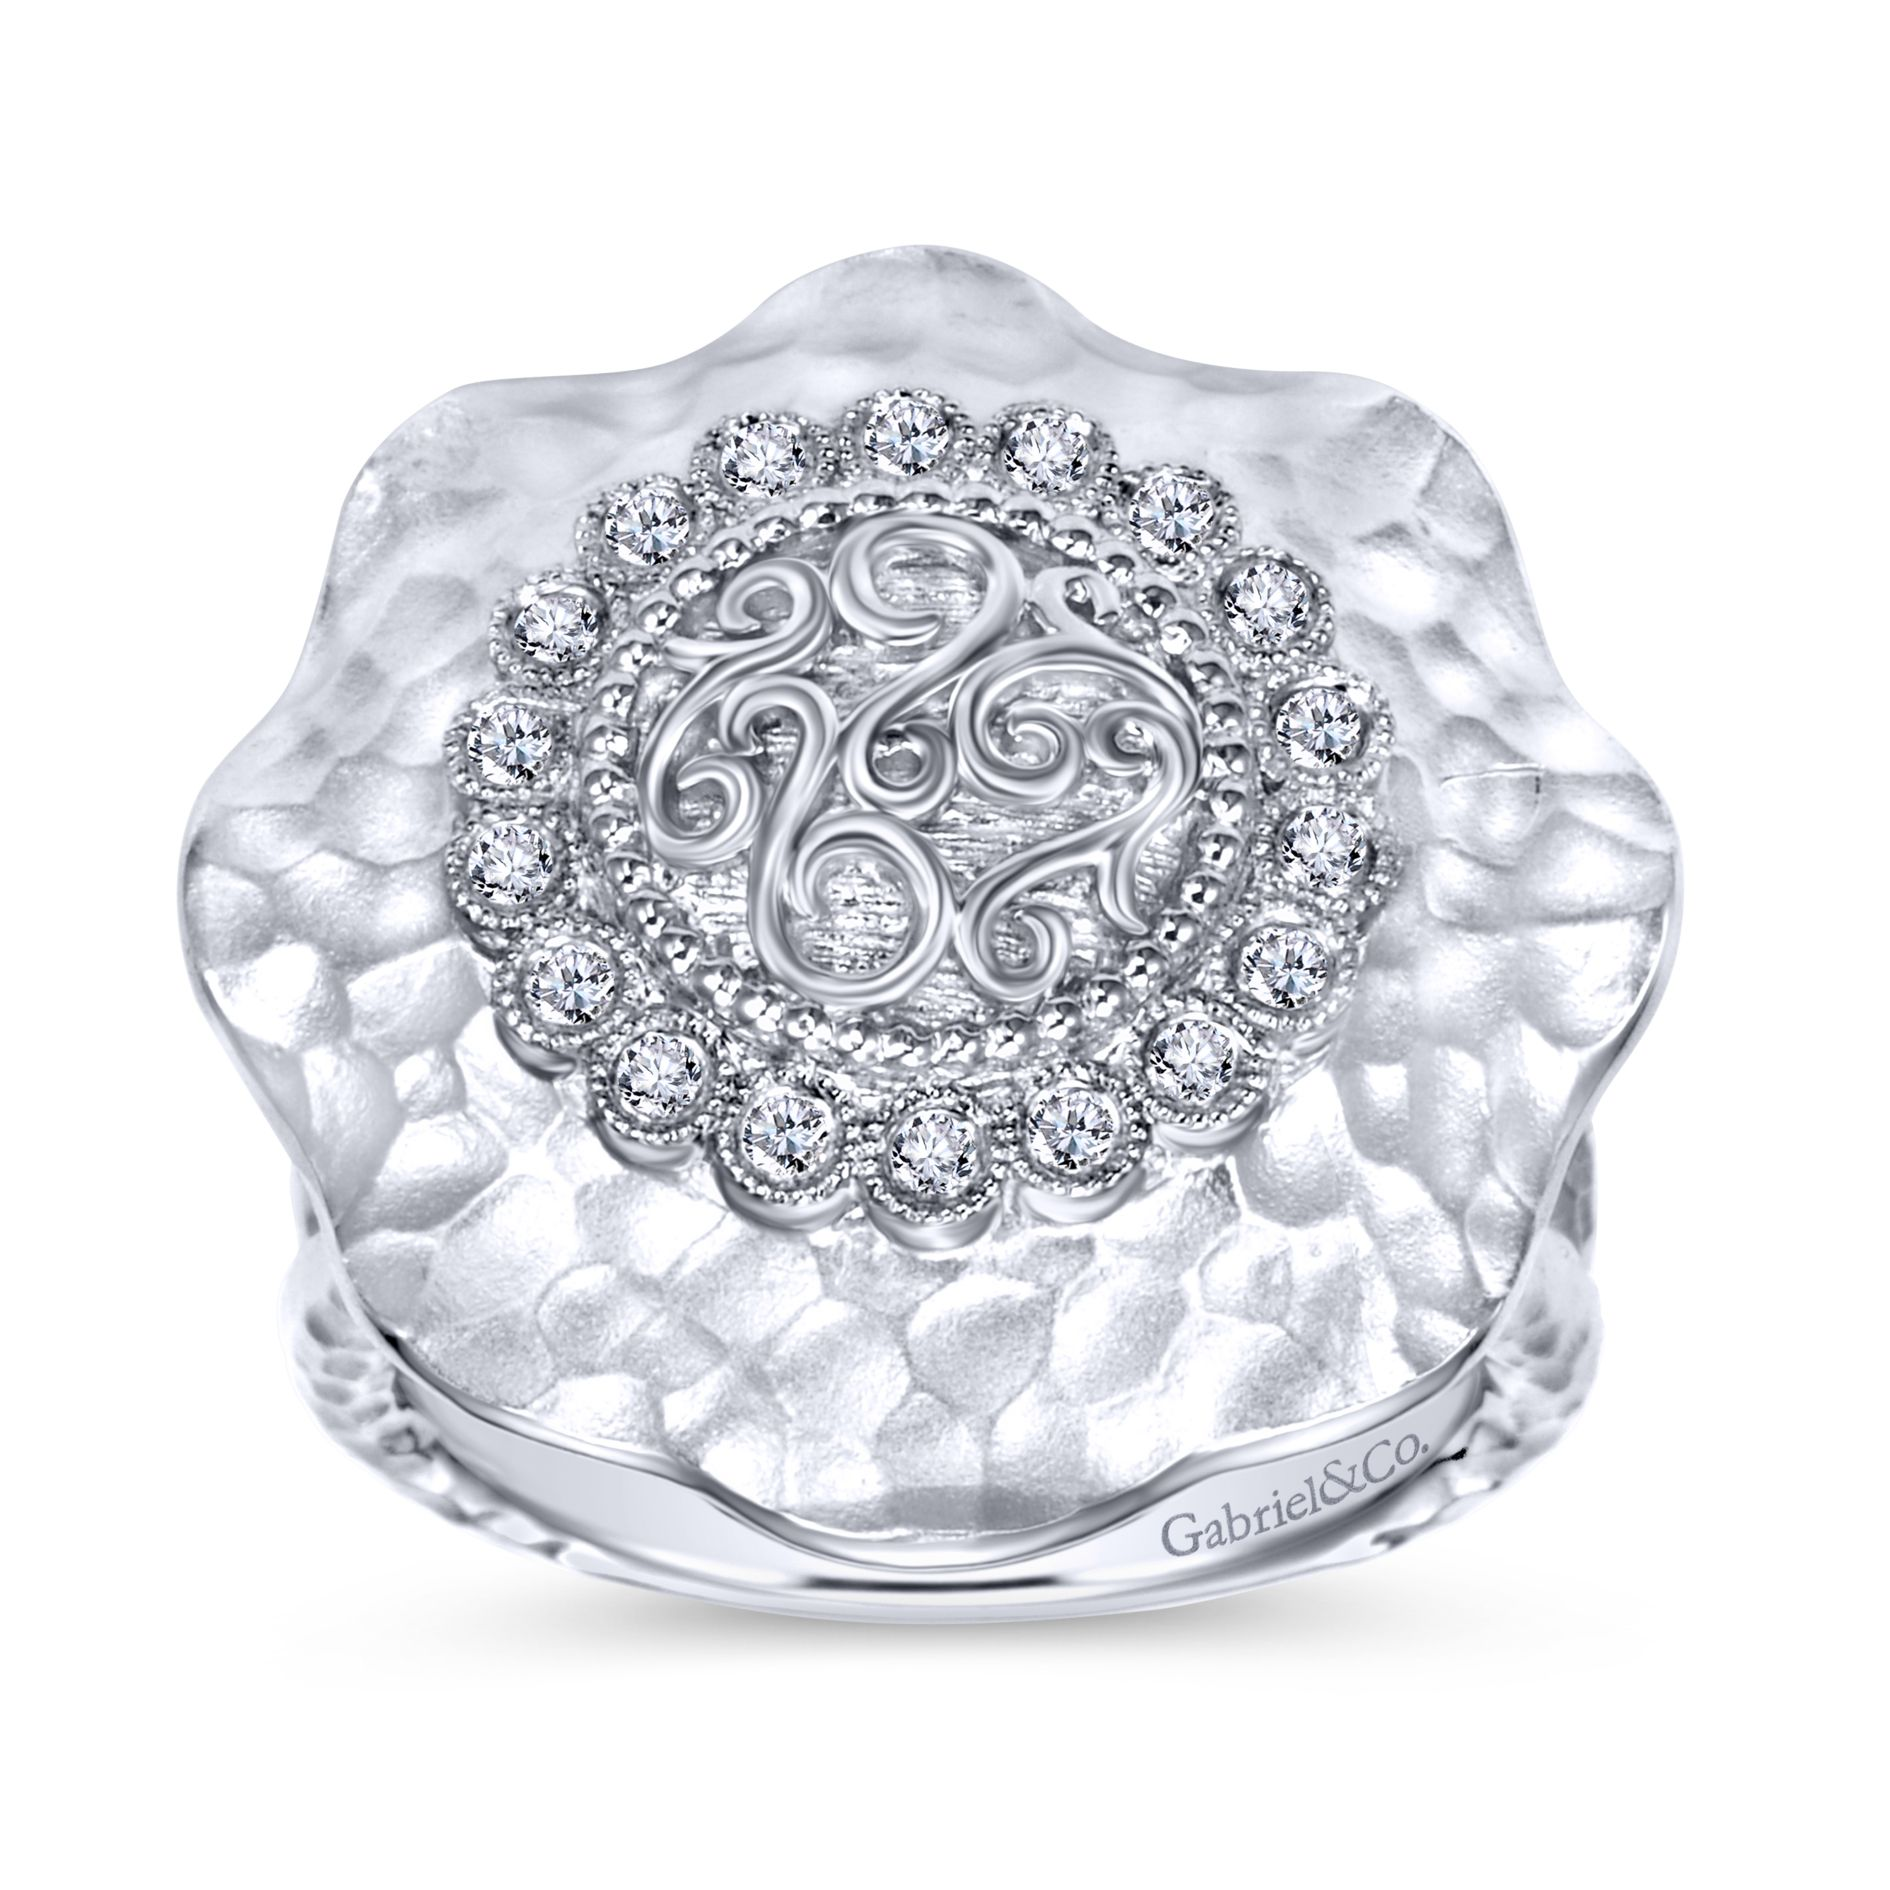 Rings - SILVER FASHION DIAMOND LADIES RING - image #4